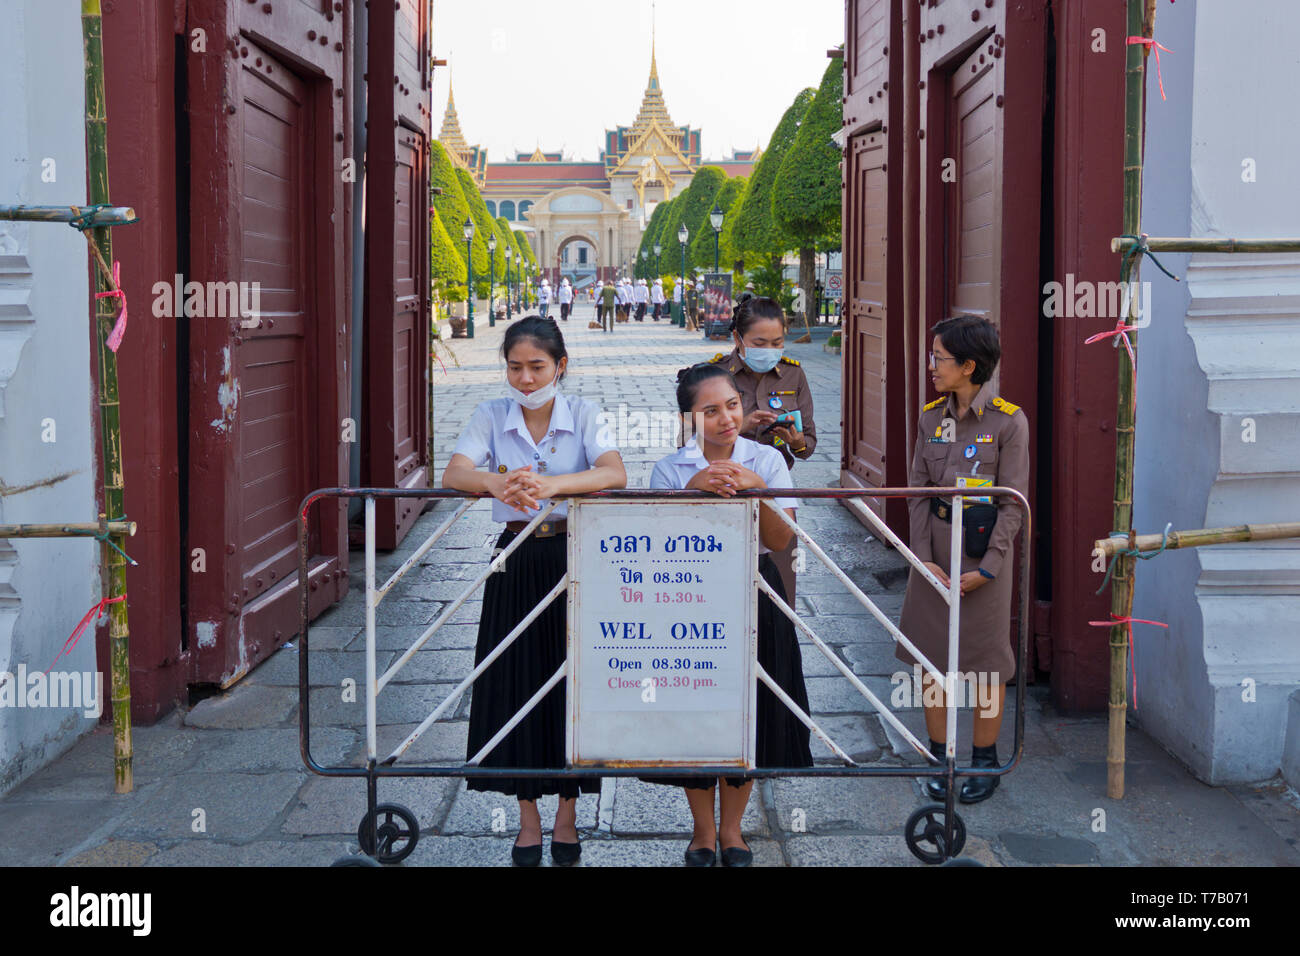 Entrance to the Grand Palace, Phra Nakhon, Bangkok, Thailand Stock Photo